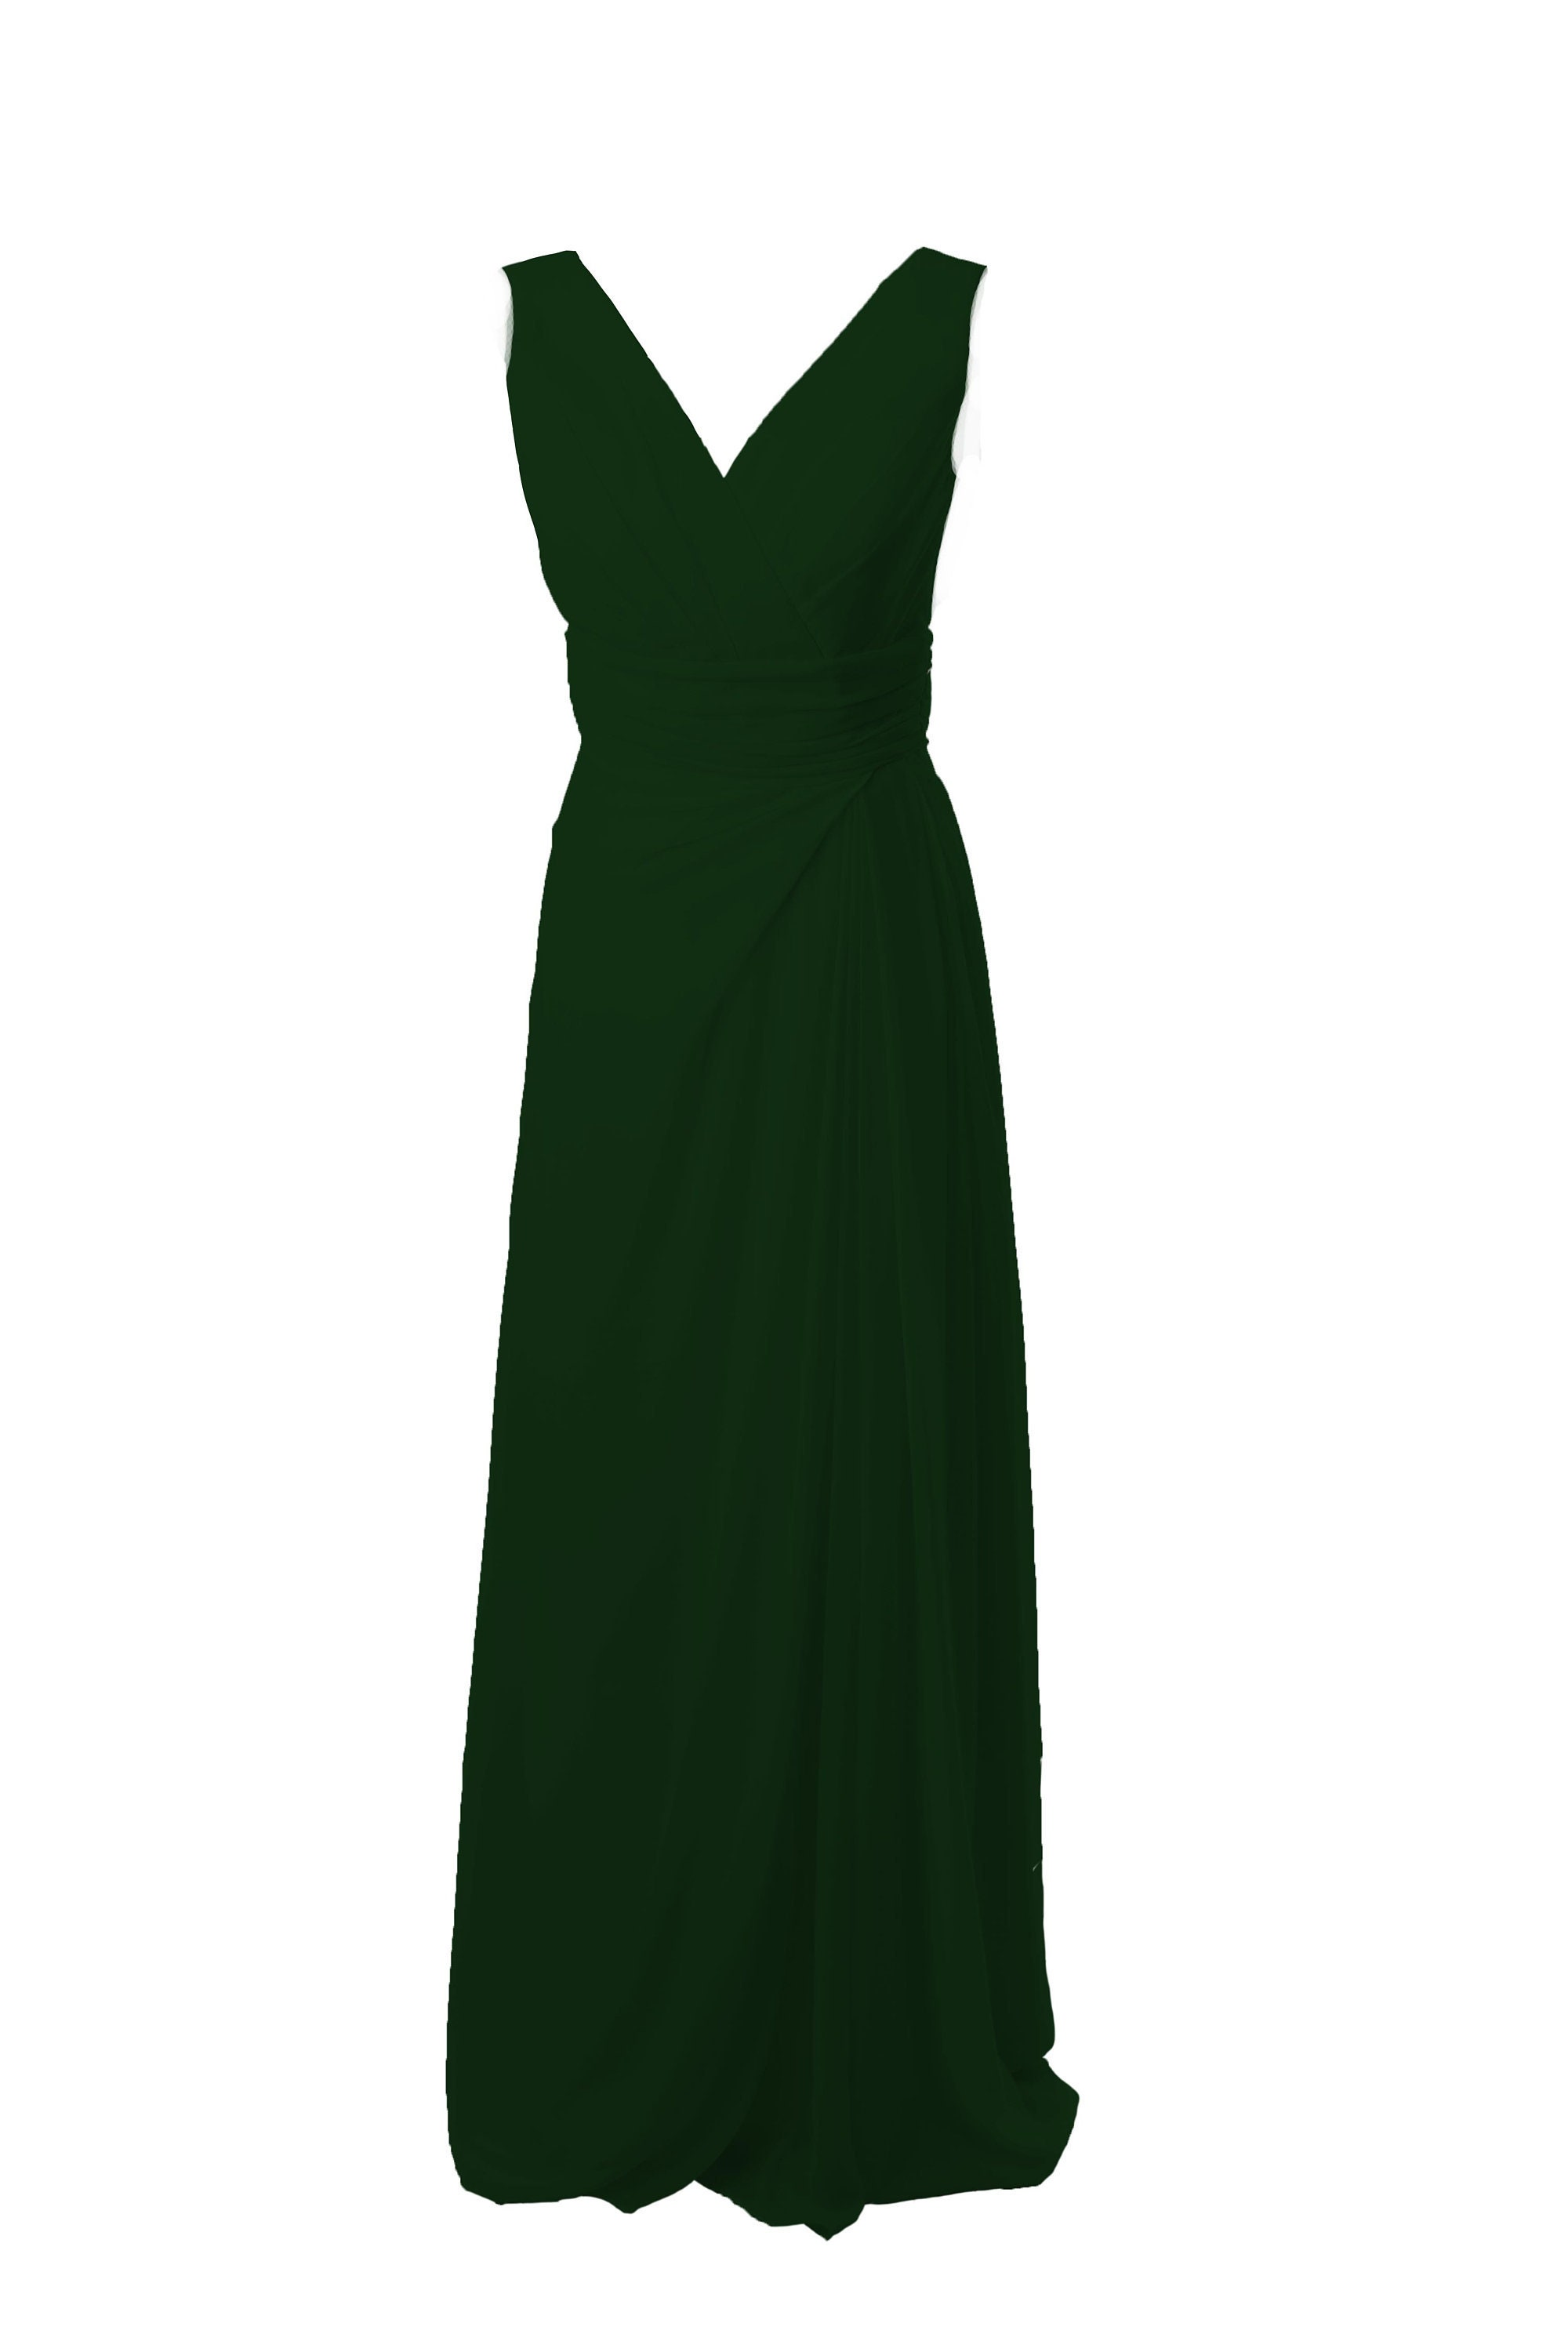 ad1e4c64257 Forest Green Classic Long Bridesmaid Dress with straps by